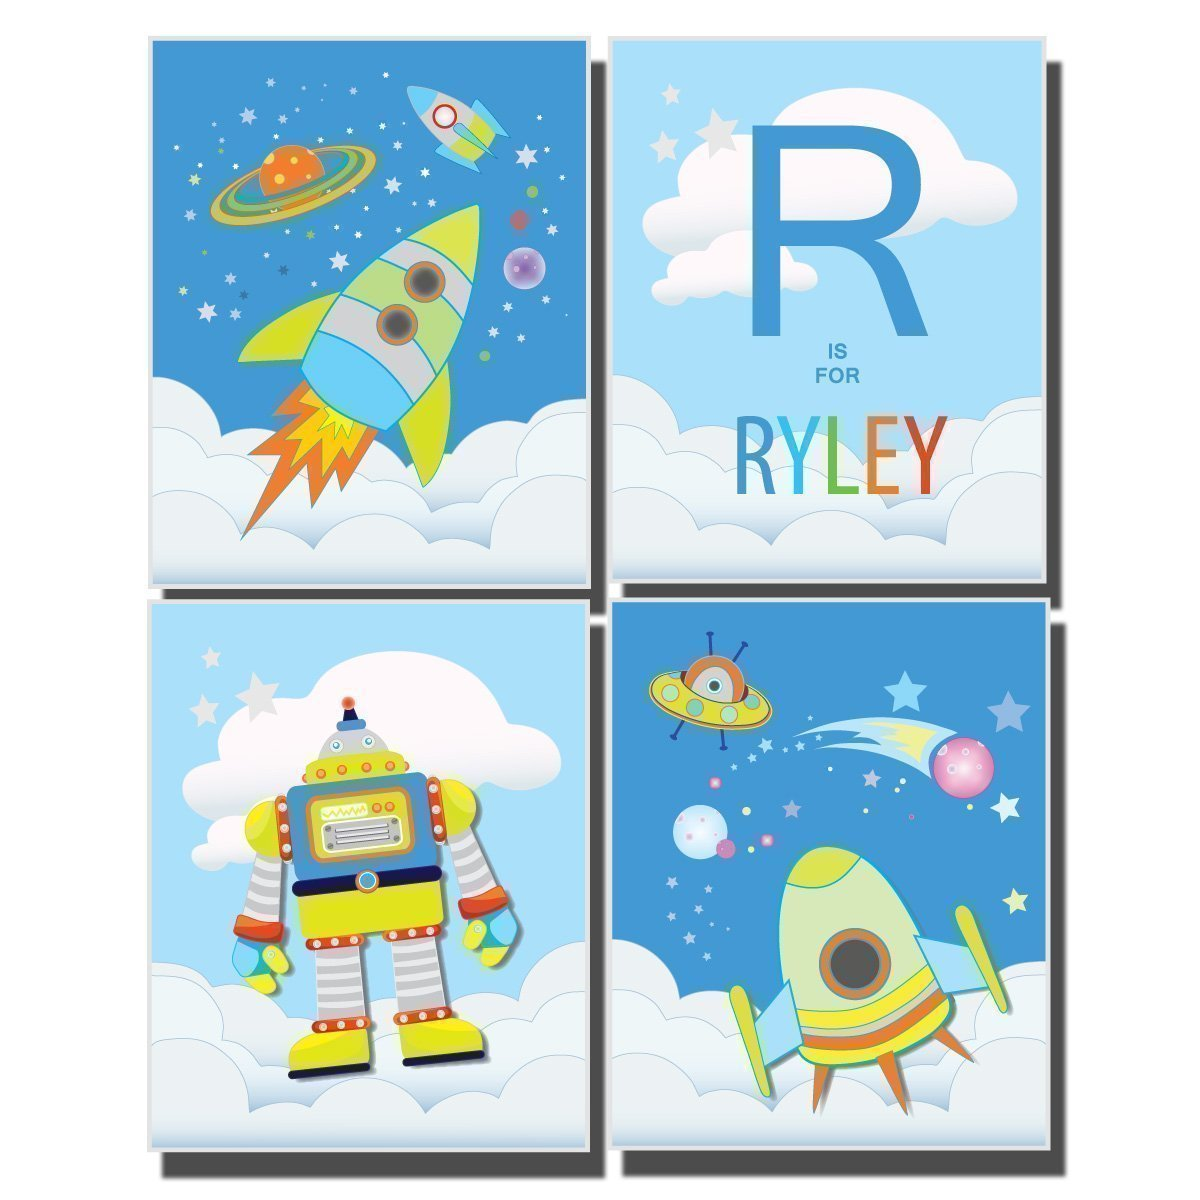 amazon com boy s bedroom decor outer space wall art nursery amazon com boy s bedroom decor outer space wall art nursery rocket ship pictures solar system moon stars planets space man astronaut customize name letter